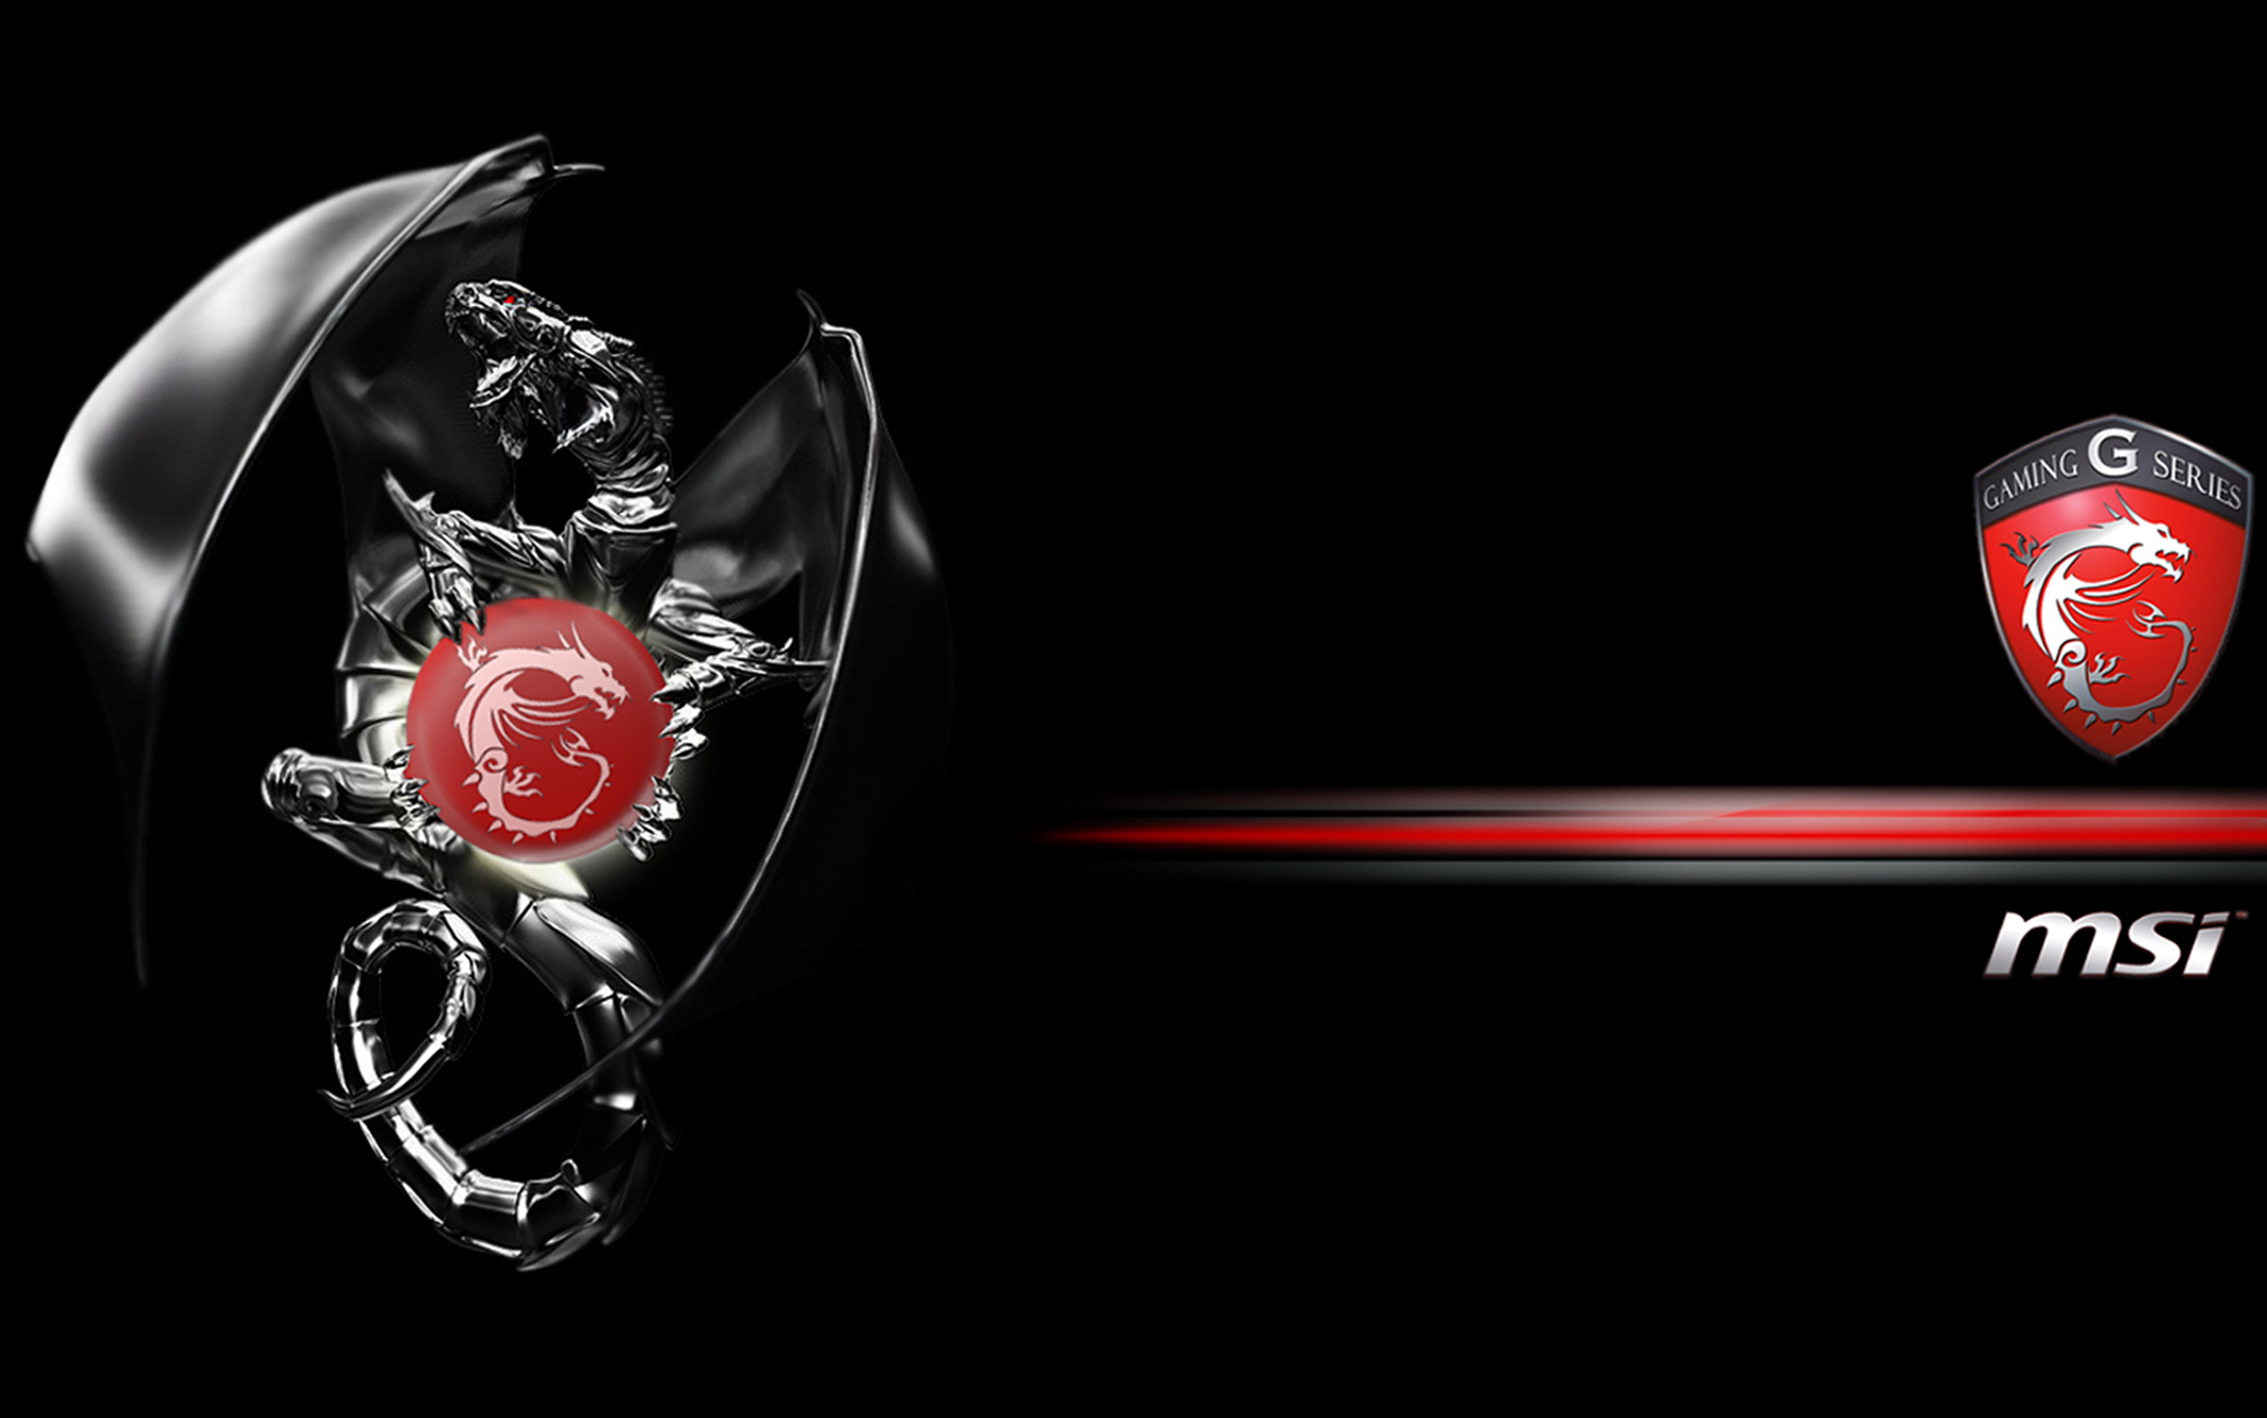 Msi wallpaper 1920x1080 wallpapersafari for Fond ecran gaming